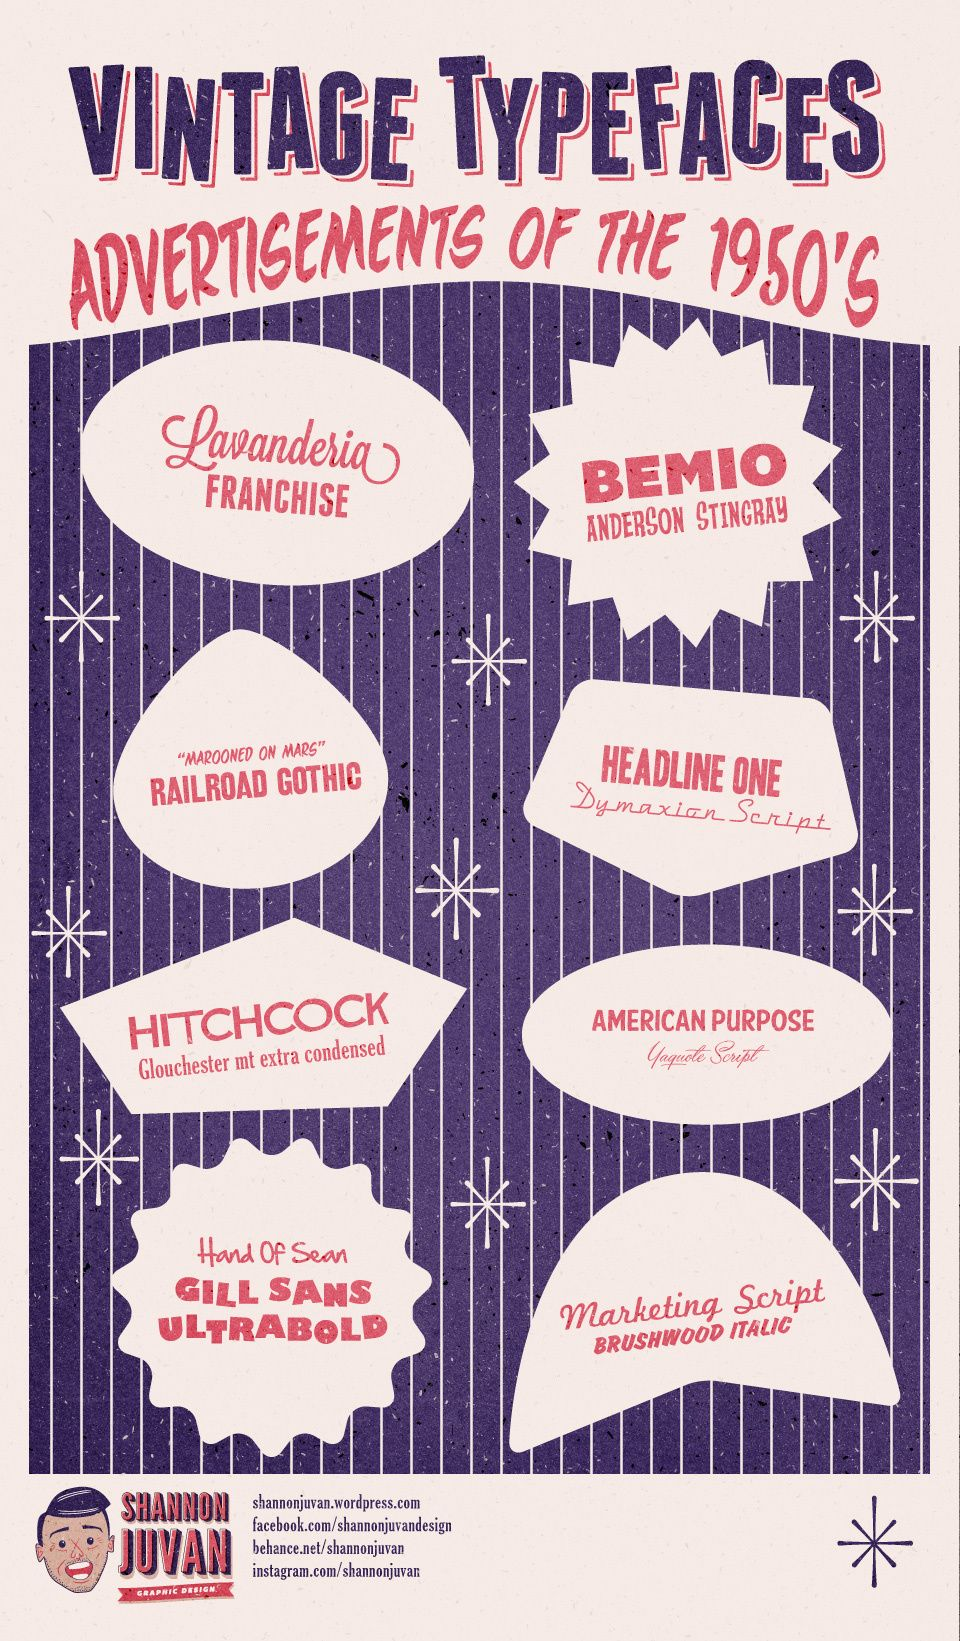 16 Vintage Looking Typefaces For 1950 S Style Advertisements Most Of Them Free Vintage Graphic Design Vintage Typography Retro Font